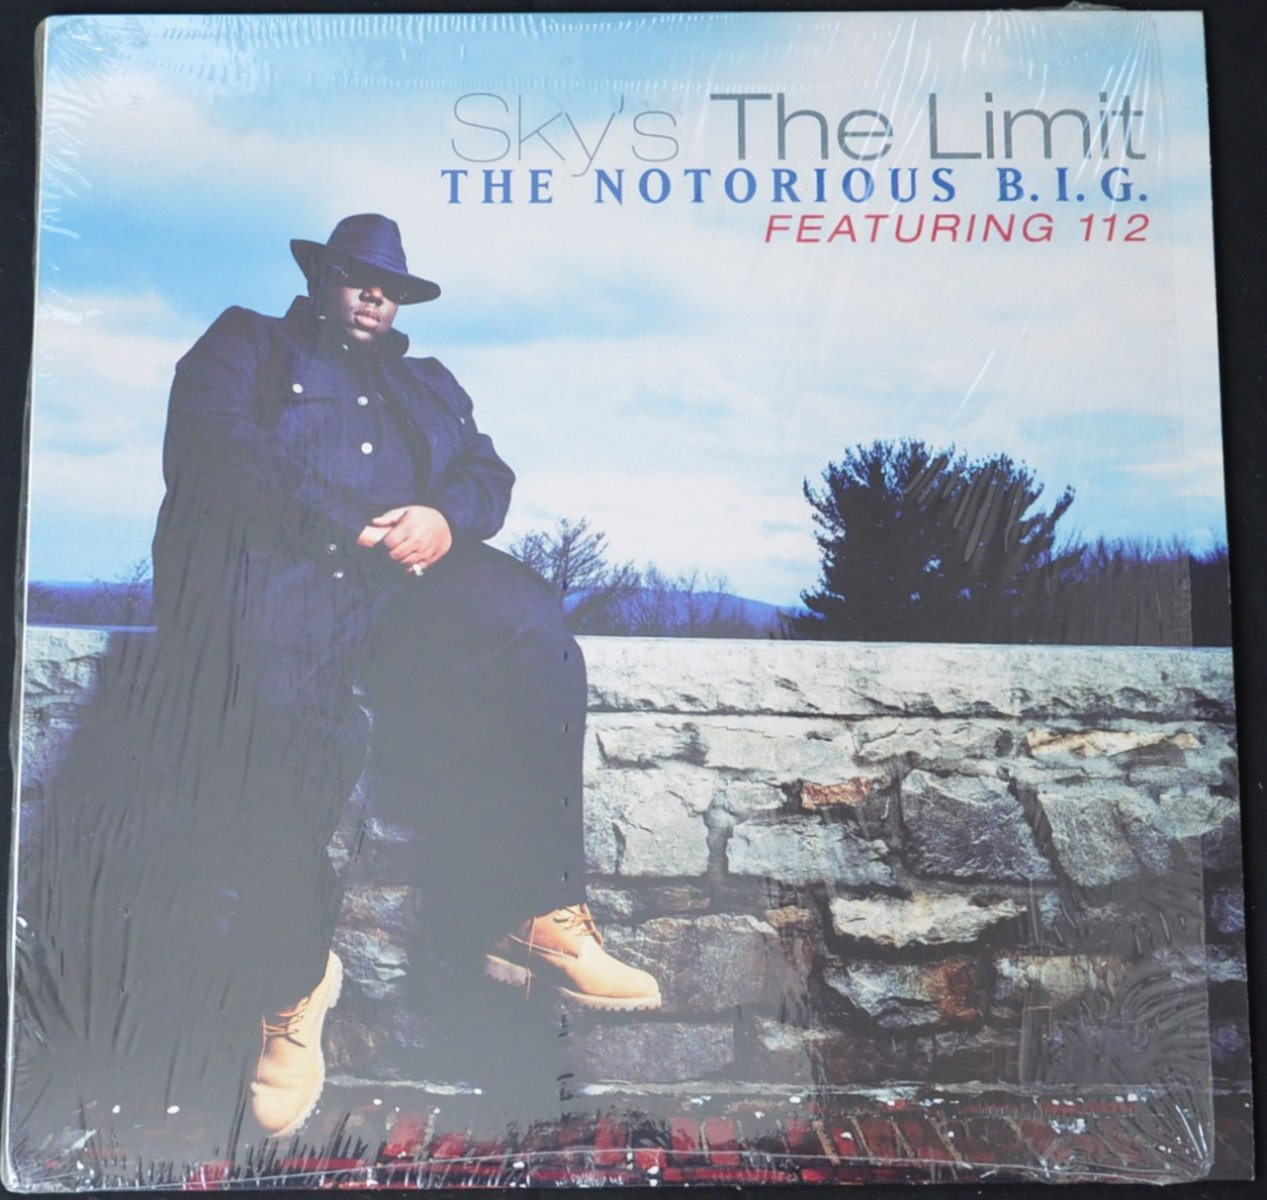 THE NOTORIOUS B.I.G. / SKY'S THE LIMIT / GOING BACK TO CALI / KICK IN THE DOOR (12